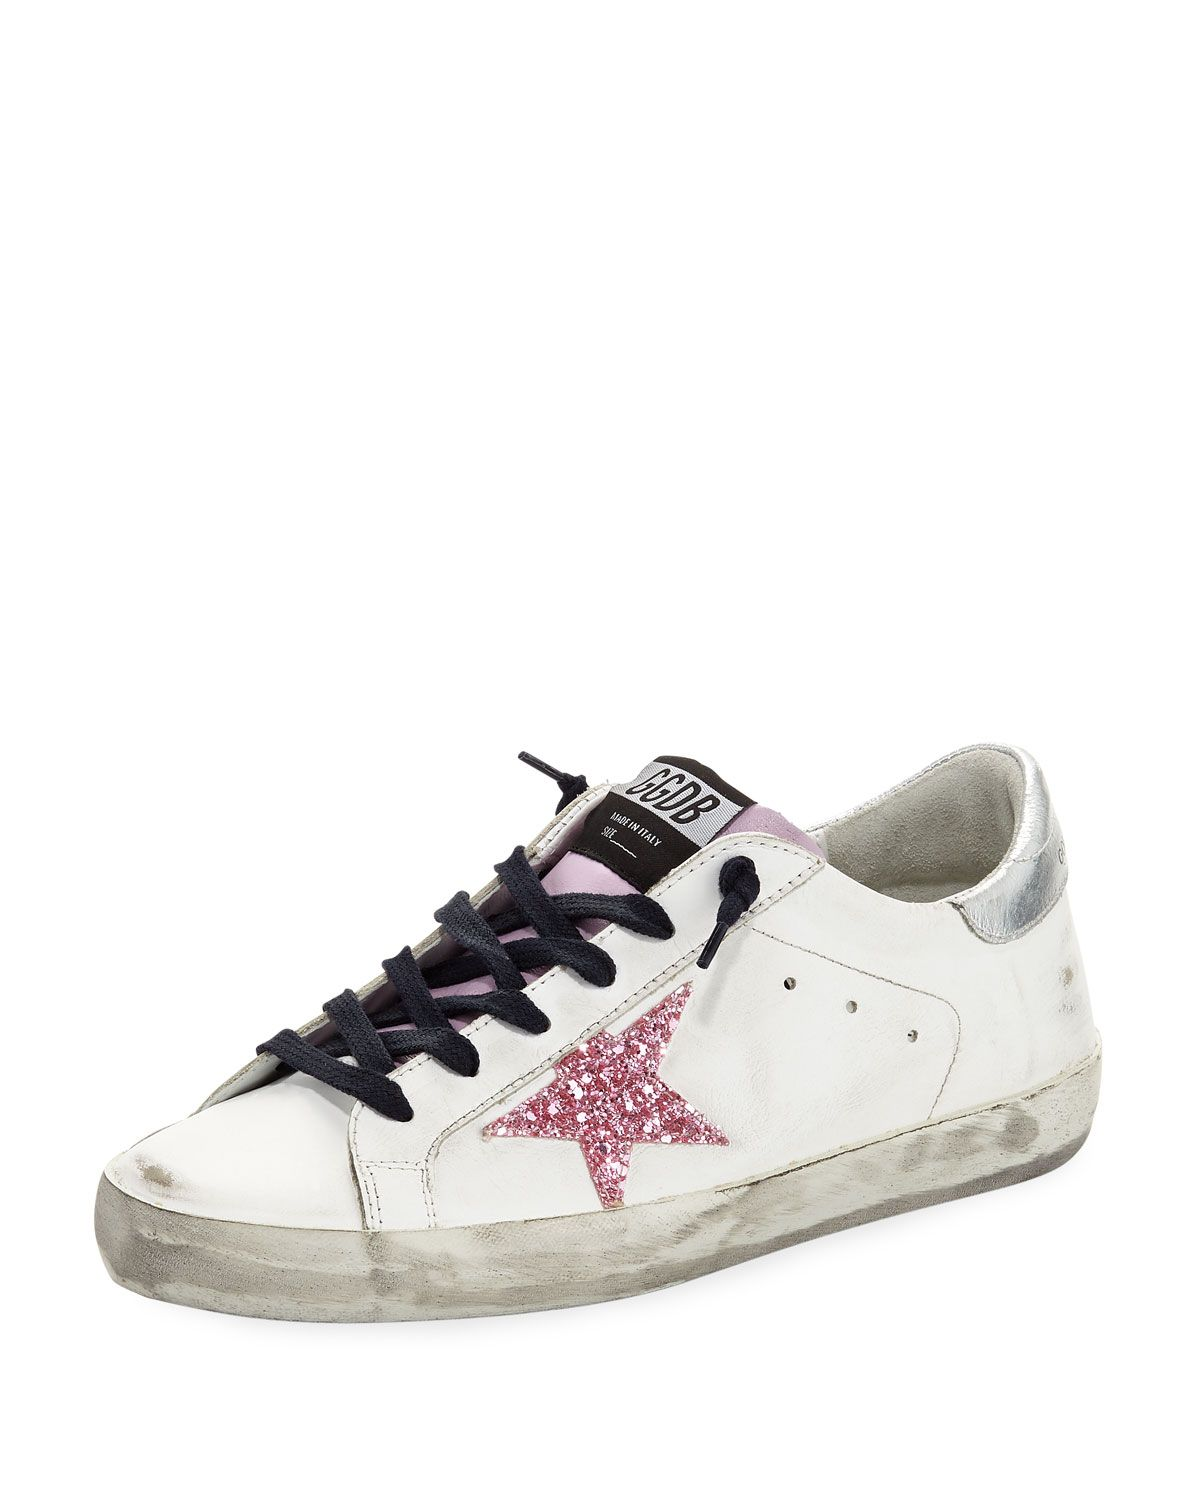 3ff38ba7c4e GOLDEN GOOSE SUPERSTAR GLITTER PLATFORM SNEAKER.  goldengoose  shoes ...